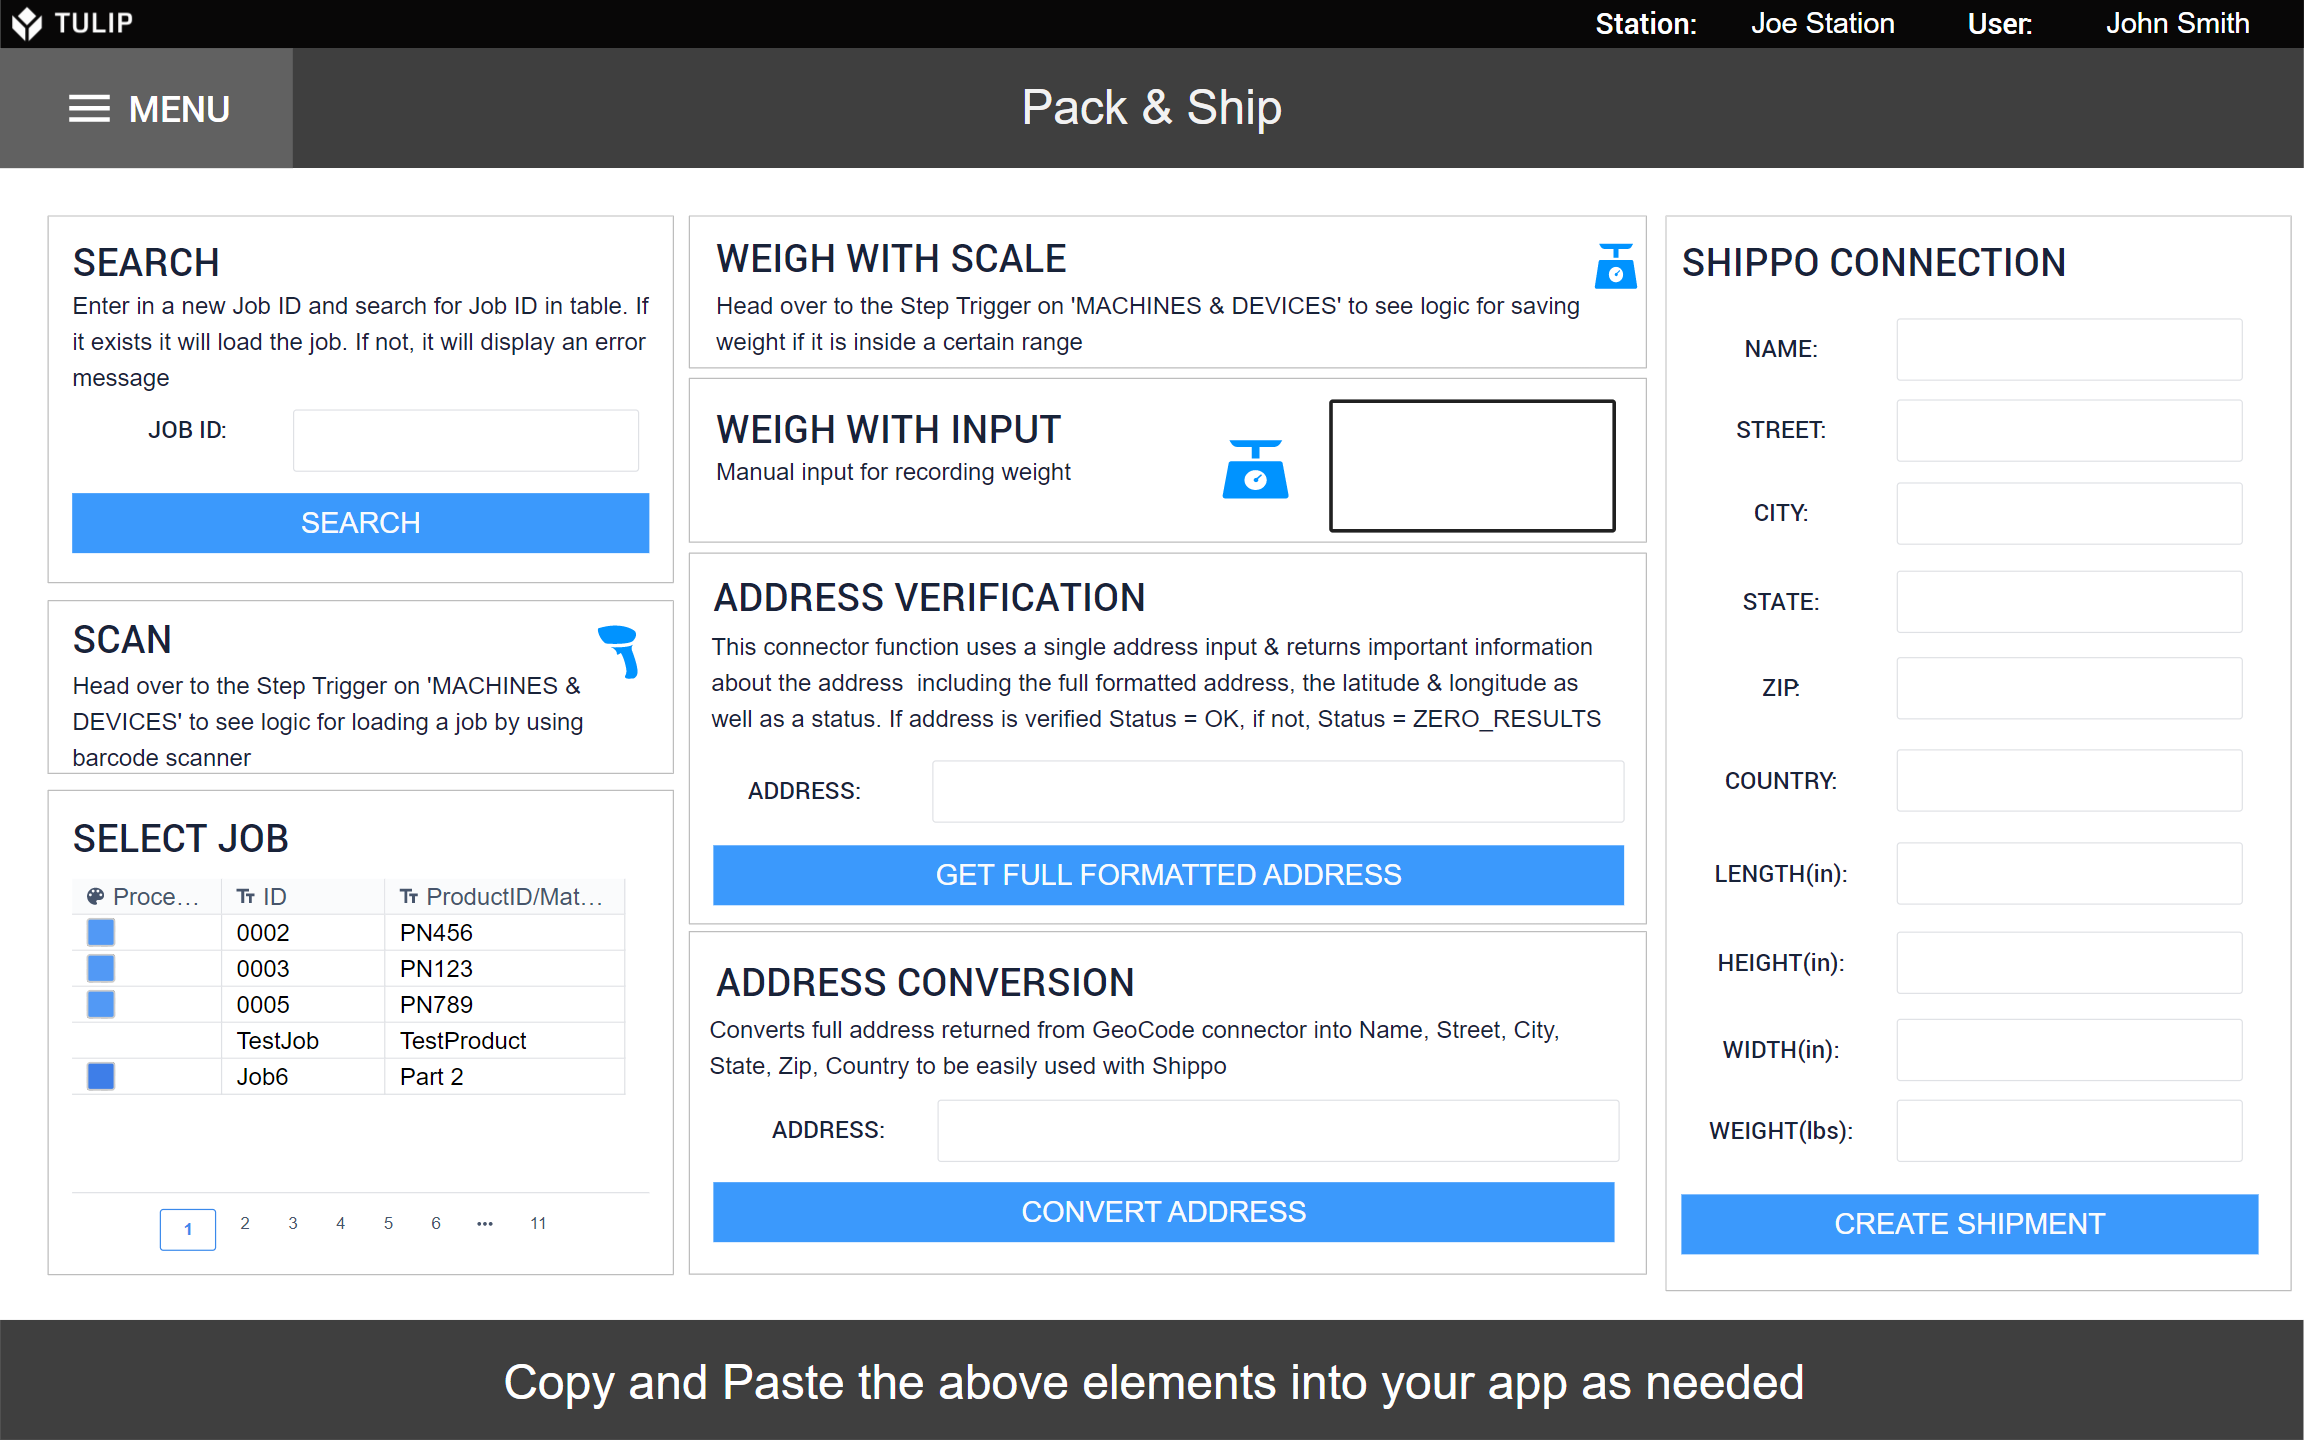 Image of Pack & Ship Module app